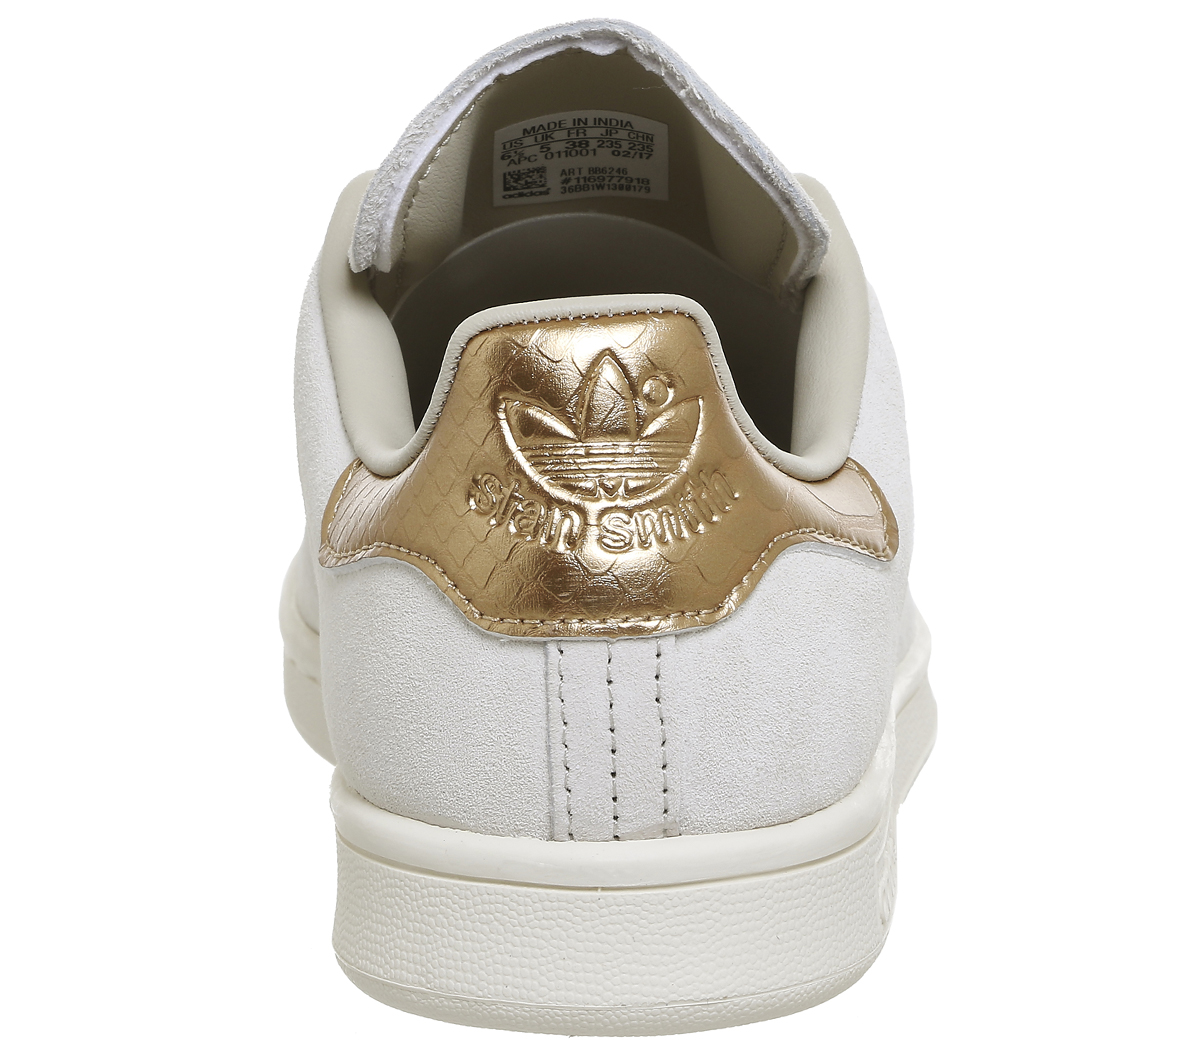 Sentinel Womens Adidas Stan Smith Trainers OFF WHITE COPPER Trainers Shoes 6f7c114b5a